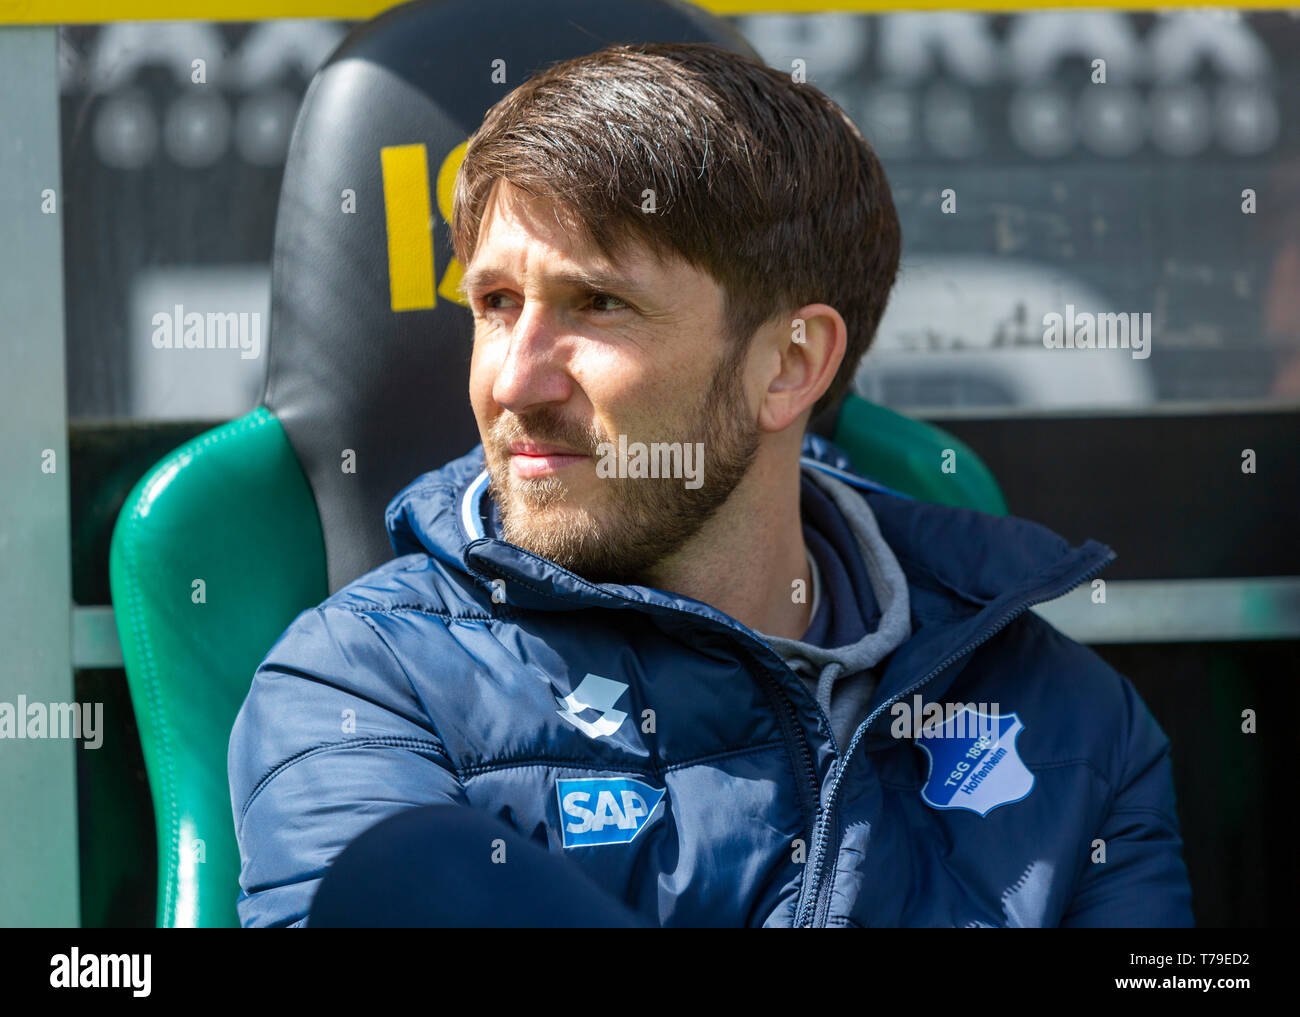 sports, football, Bundesliga, 2018/2019, Borussia Moenchengladbach vs. TSG 1899 Hoffenheim 2-2, Stadium Borussia Park, Benjamin Glueck (TSG), assistant coach analysis, DFL REGULATIONS PROHIBIT ANY USE OF PHOTOGRAPHS AS IMAGE SEQUENCES AND/OR QUASI-VIDEO - Stock Image